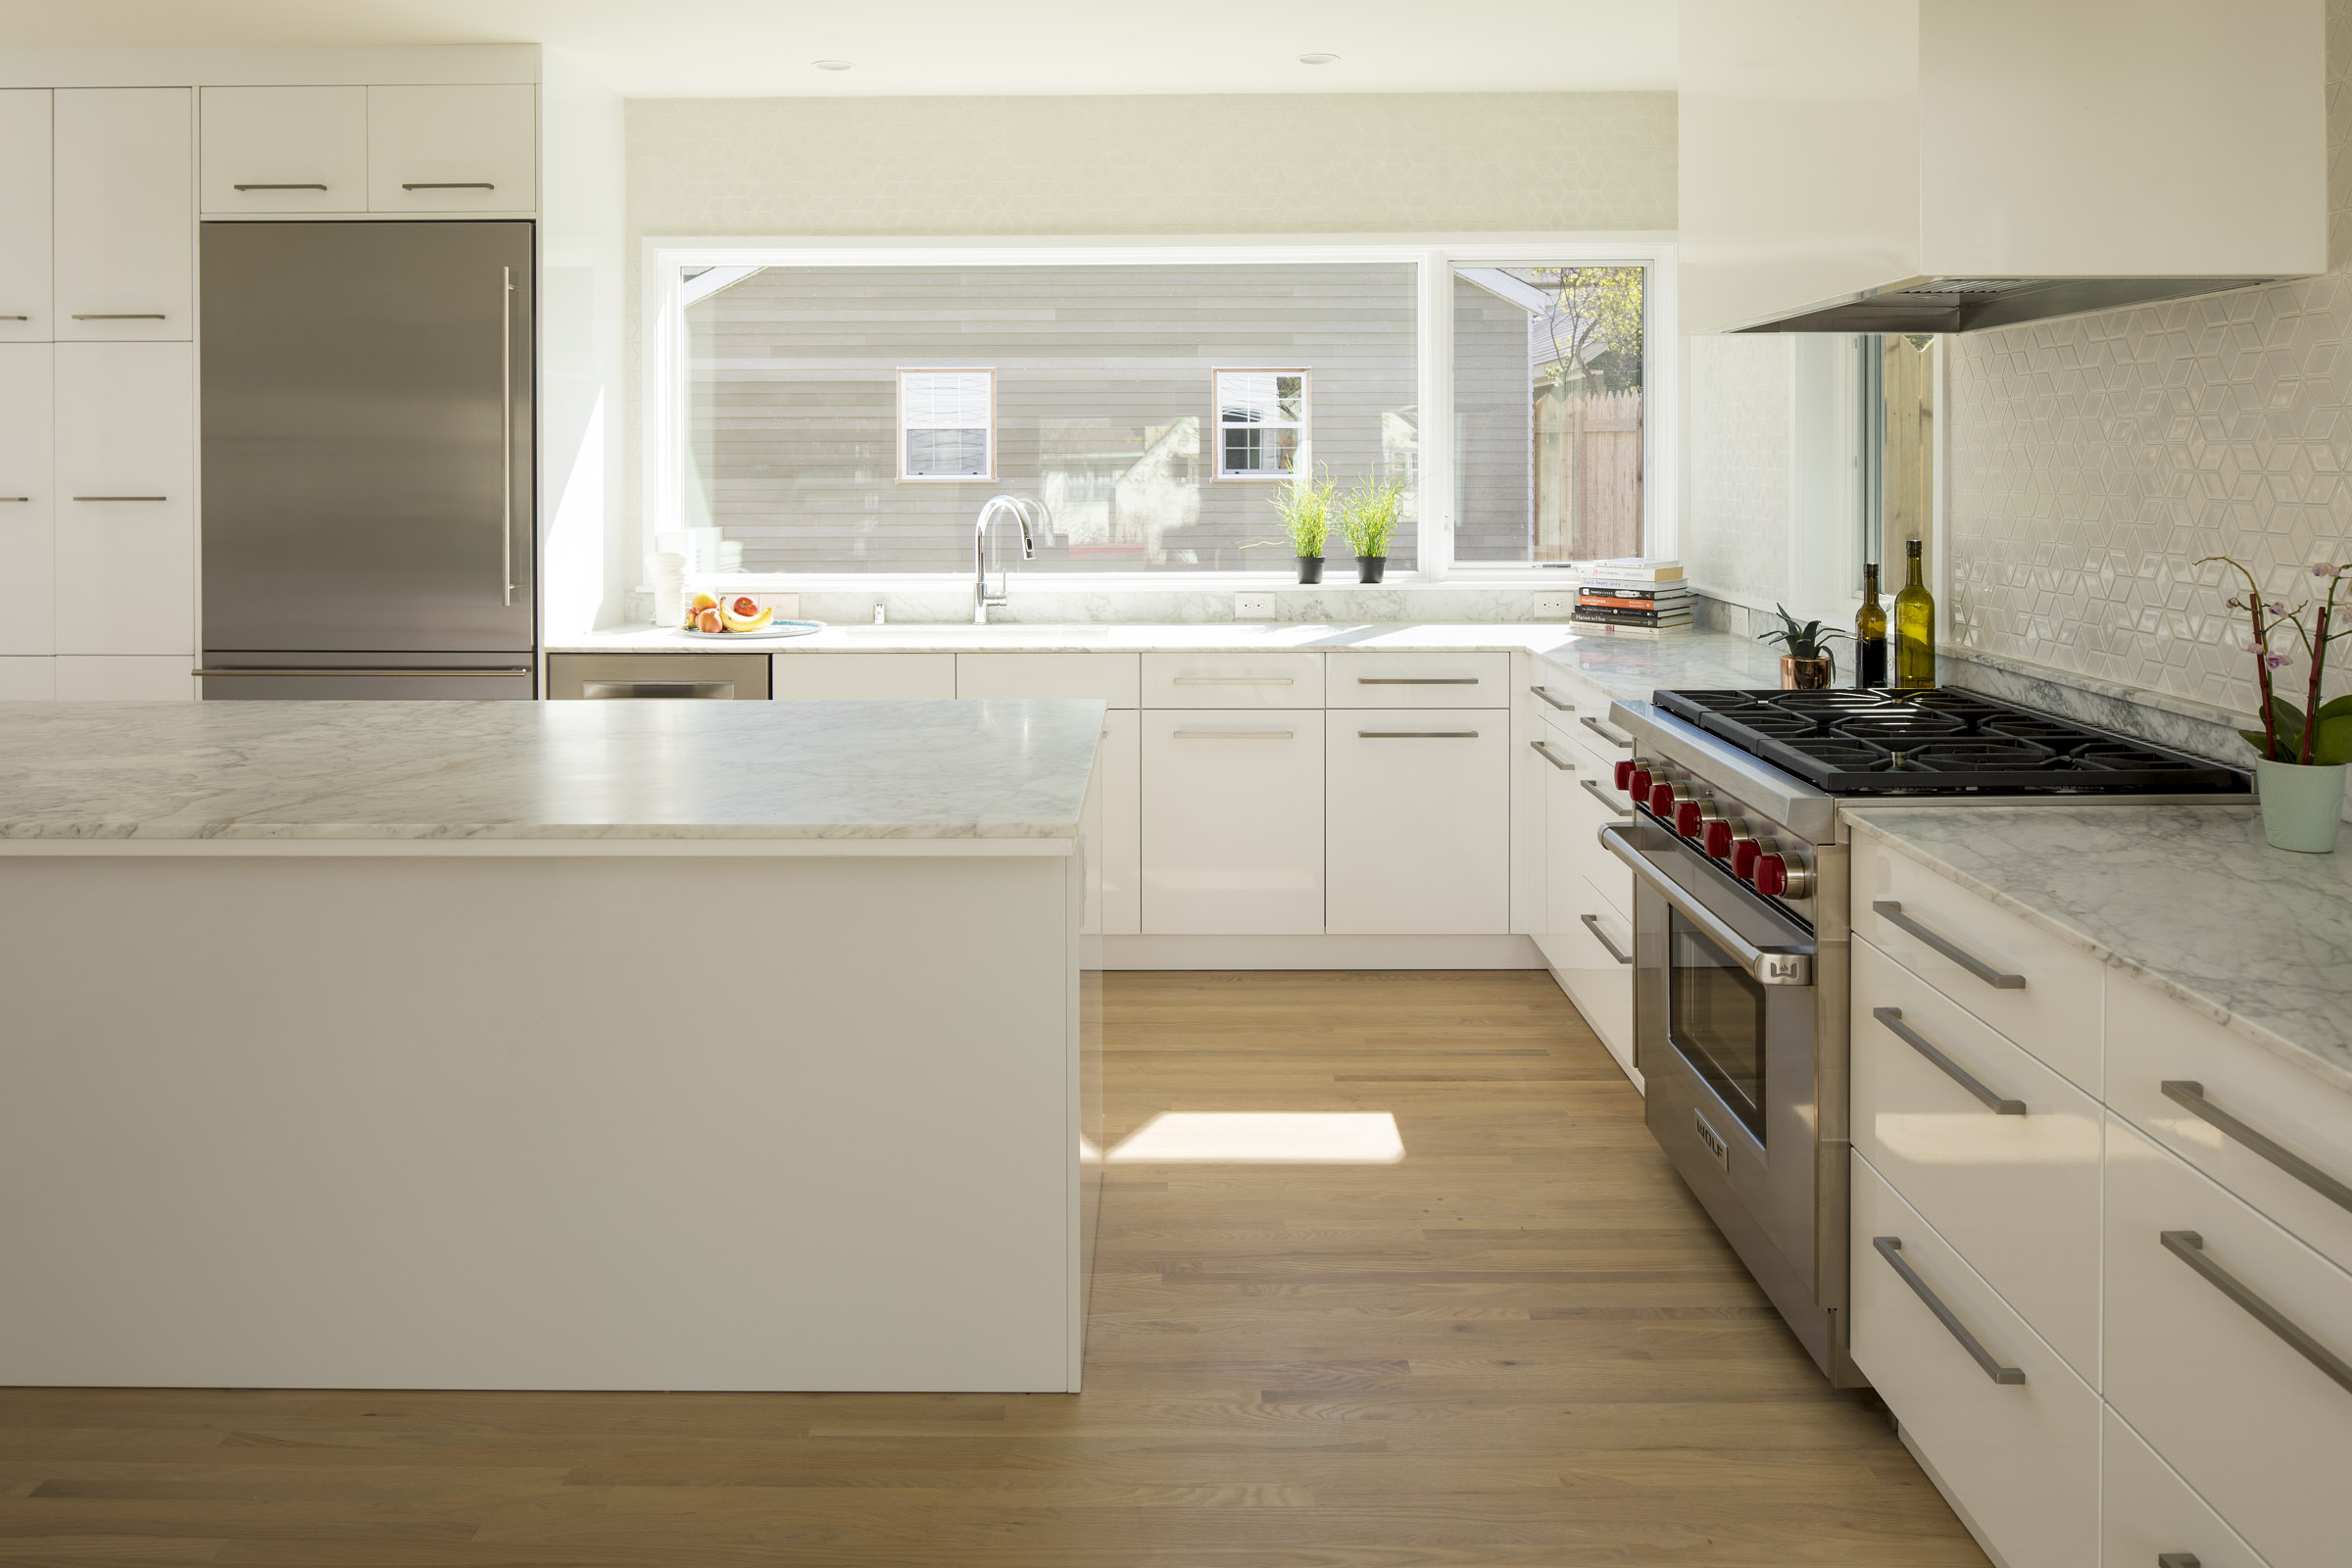 Modern kitchen remodel with white cabinetry and marble countertops